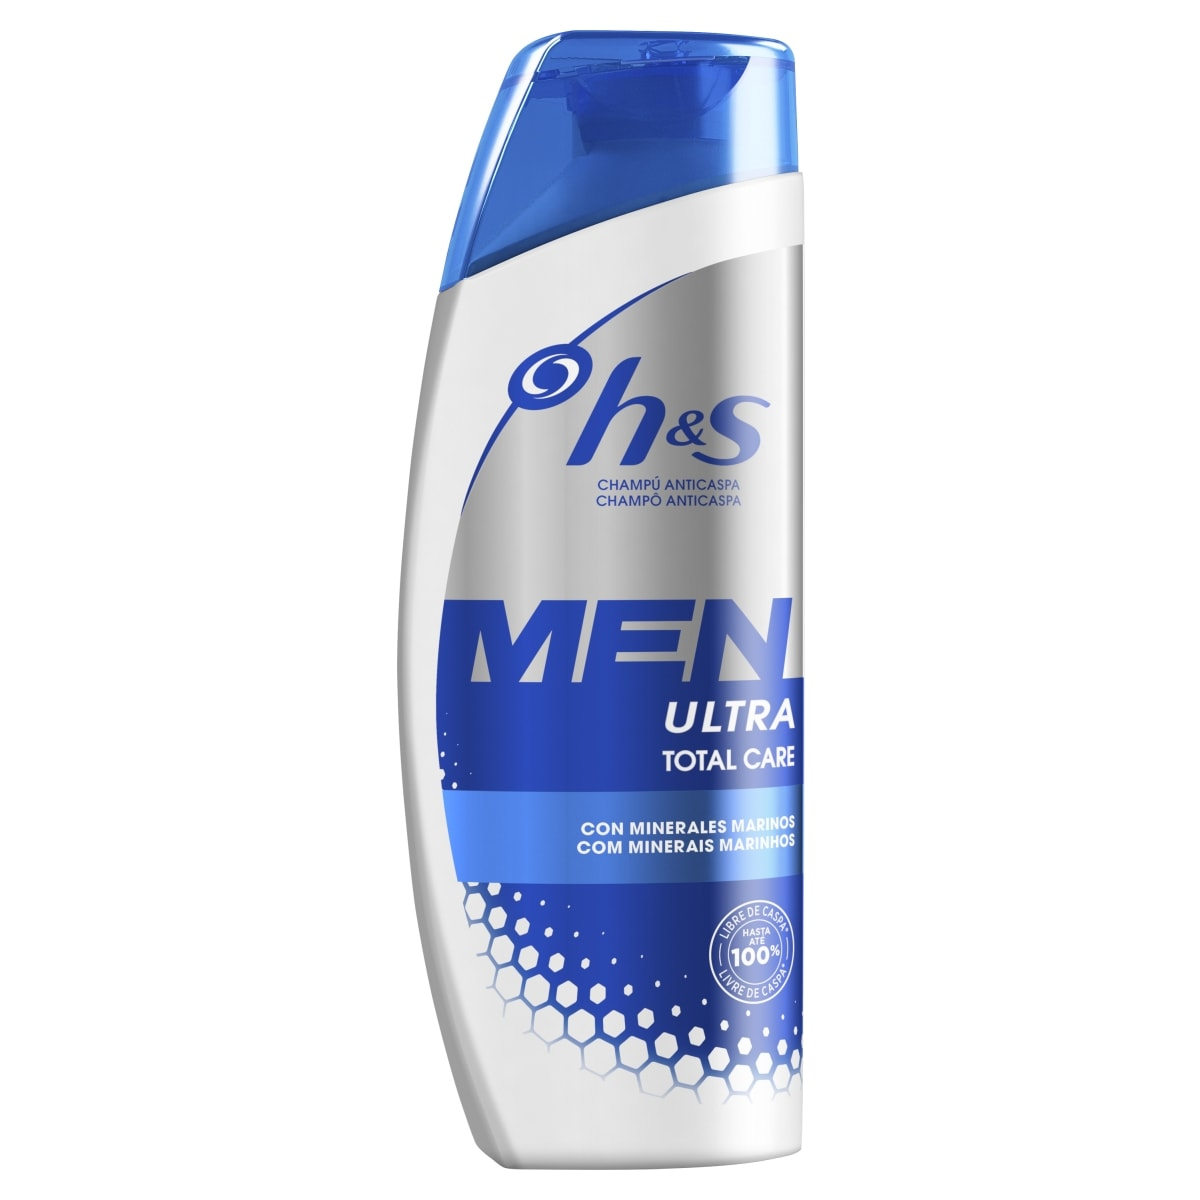 MEN ULTRA TOTAL CARE